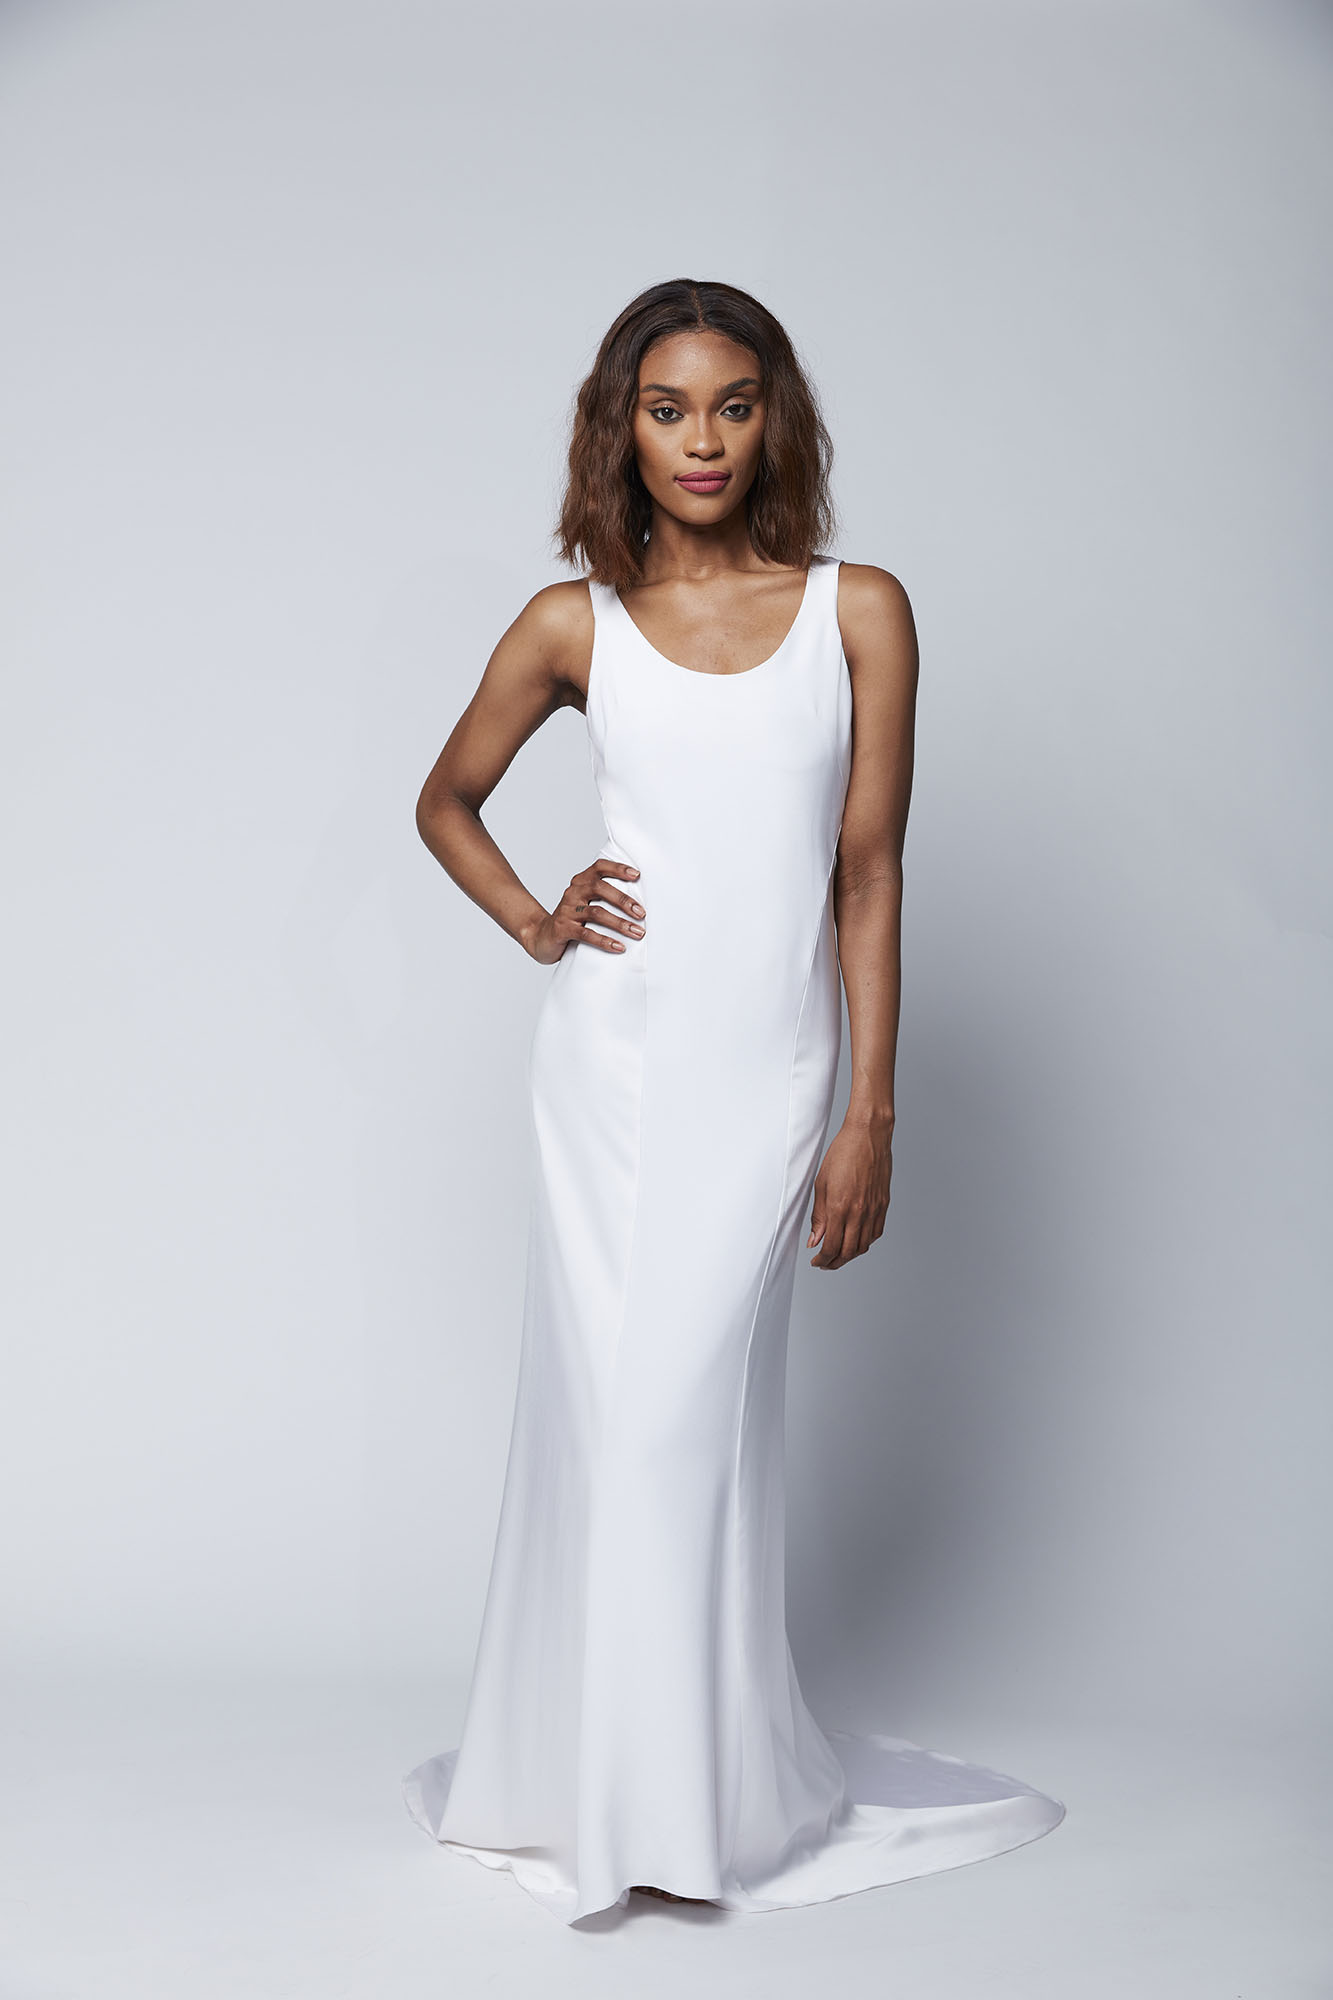 This slinky tank dress with satin side paneling and a low V back is the perfect look for the no frills bride who is seeking effortless chic.